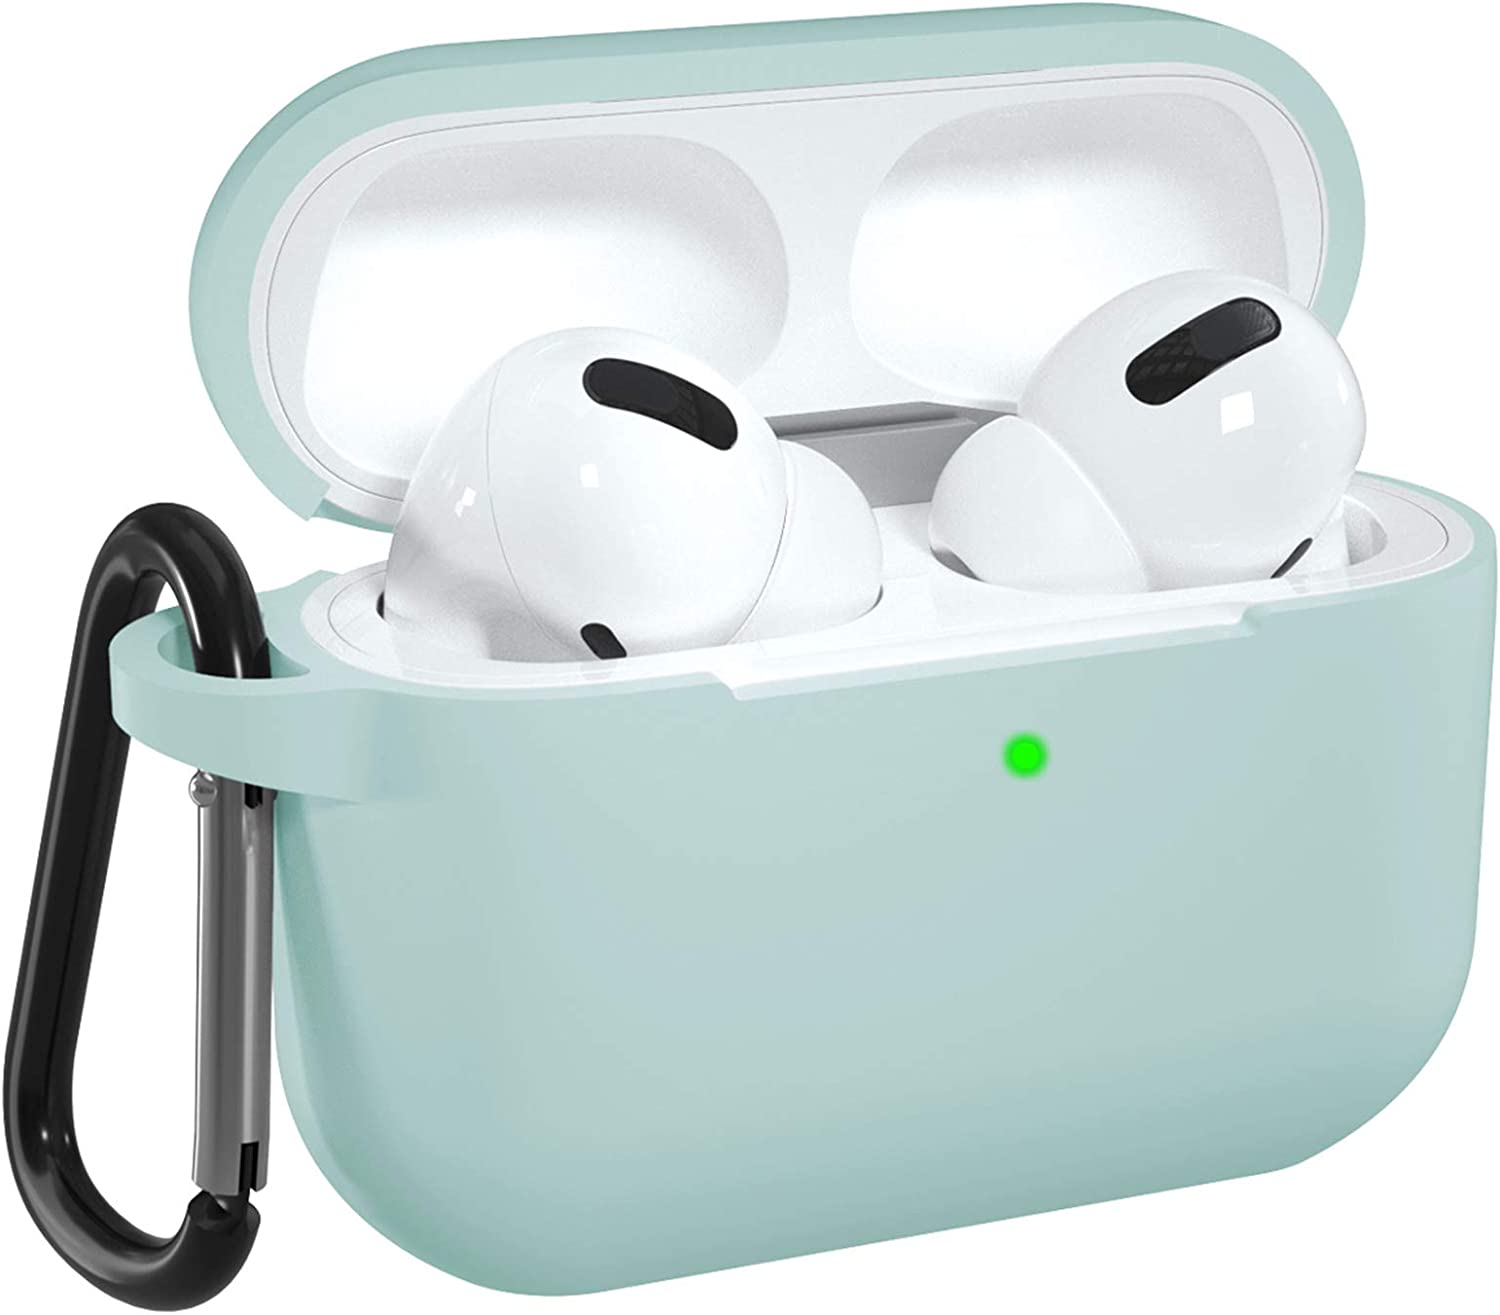 DGege Silicone Case Cover Compatible with Apple AirPods Pro, Protective Case with Carabiner for Airpods 3 (Front LED Visible), Blue Green